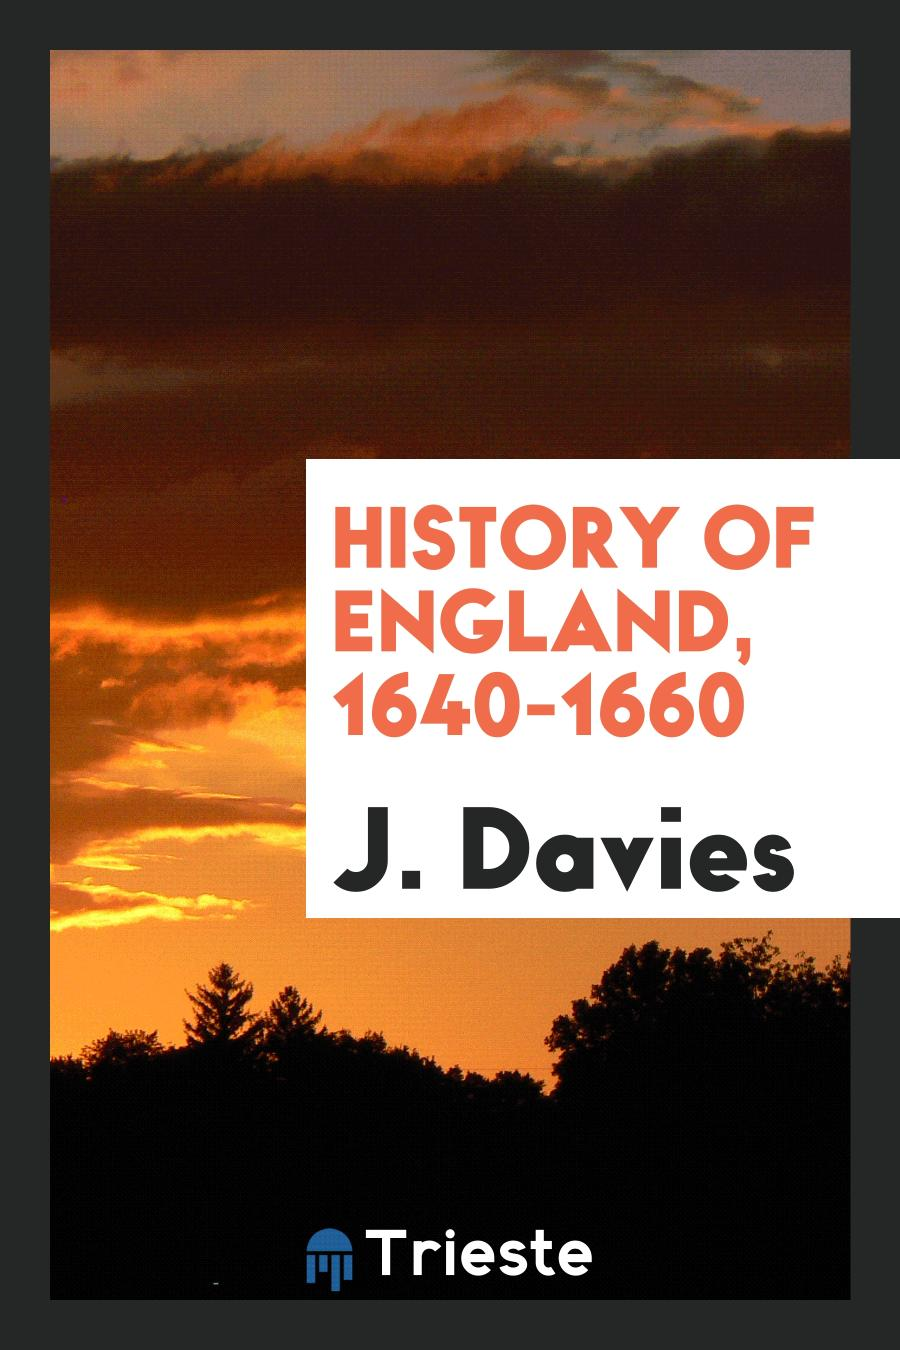 History of England, 1640-1660